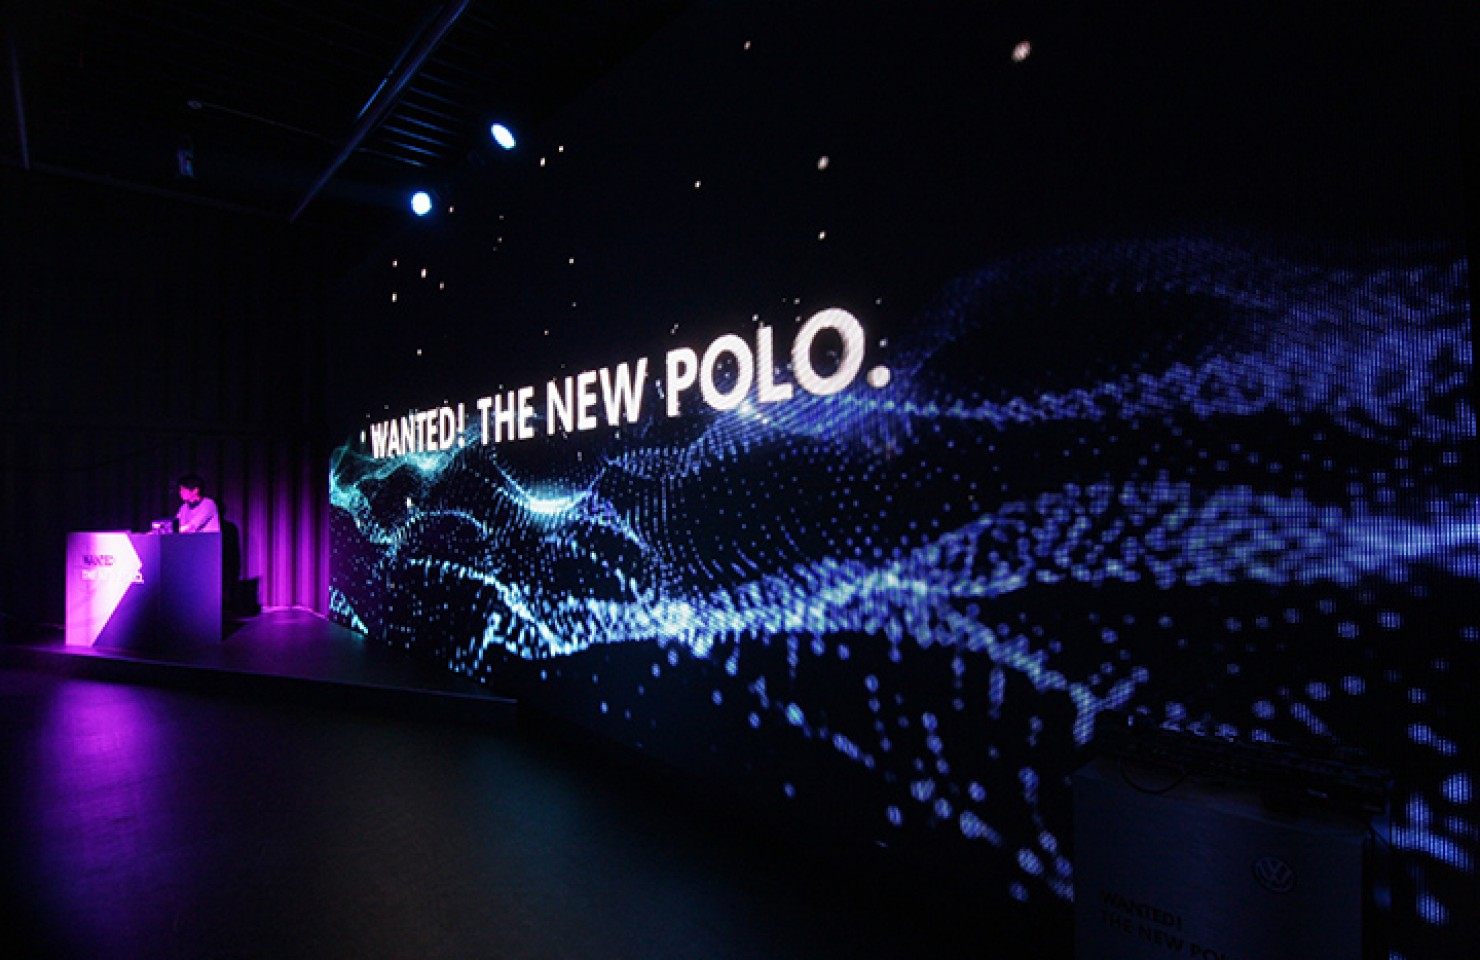 Wanted! The New Polo